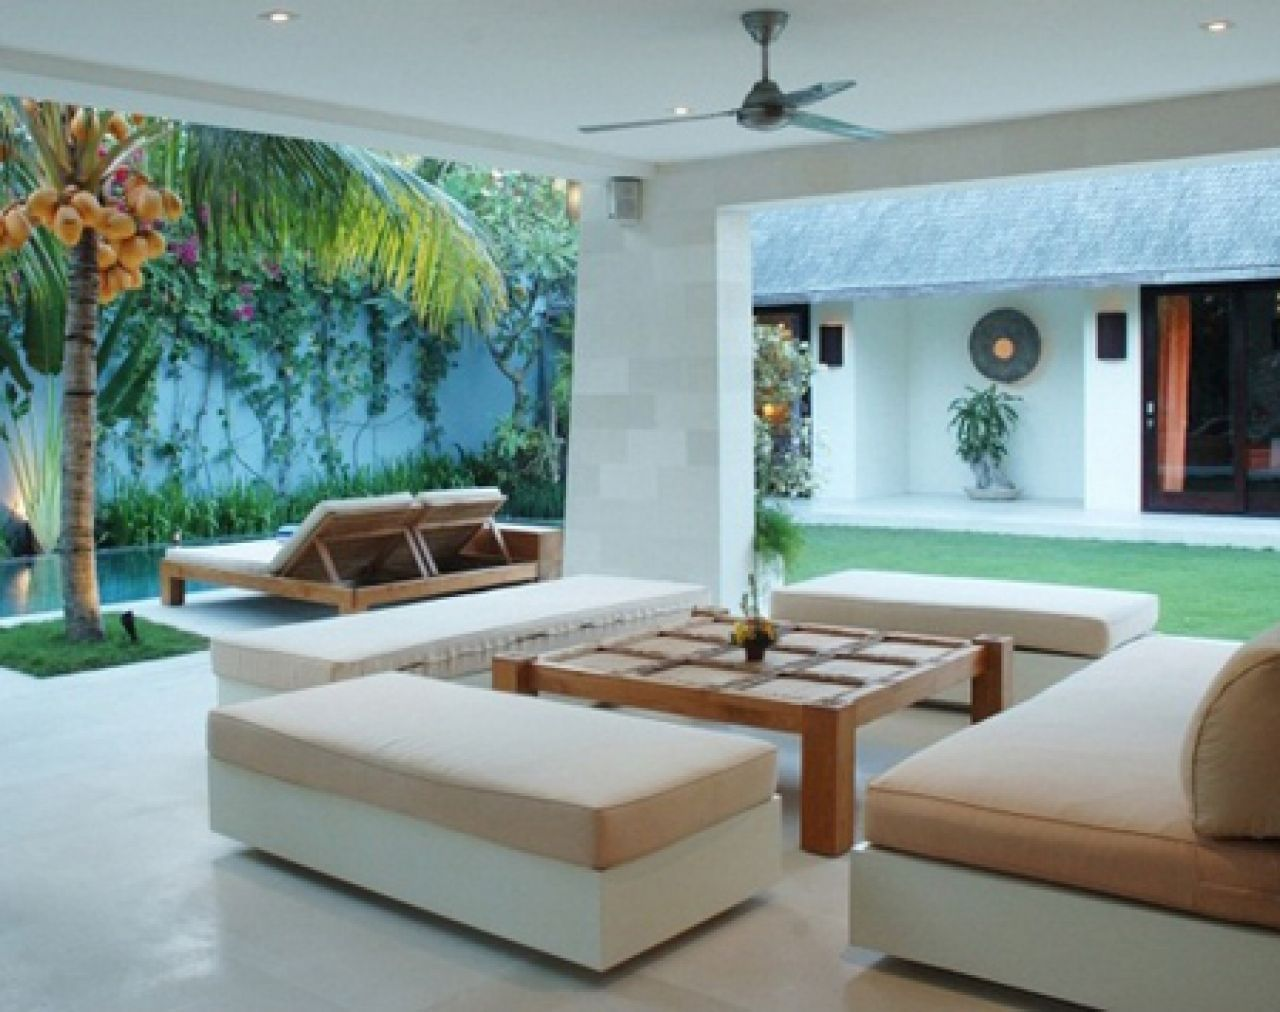 Tropical Interior House With Lounge Sofa White And Beige ...